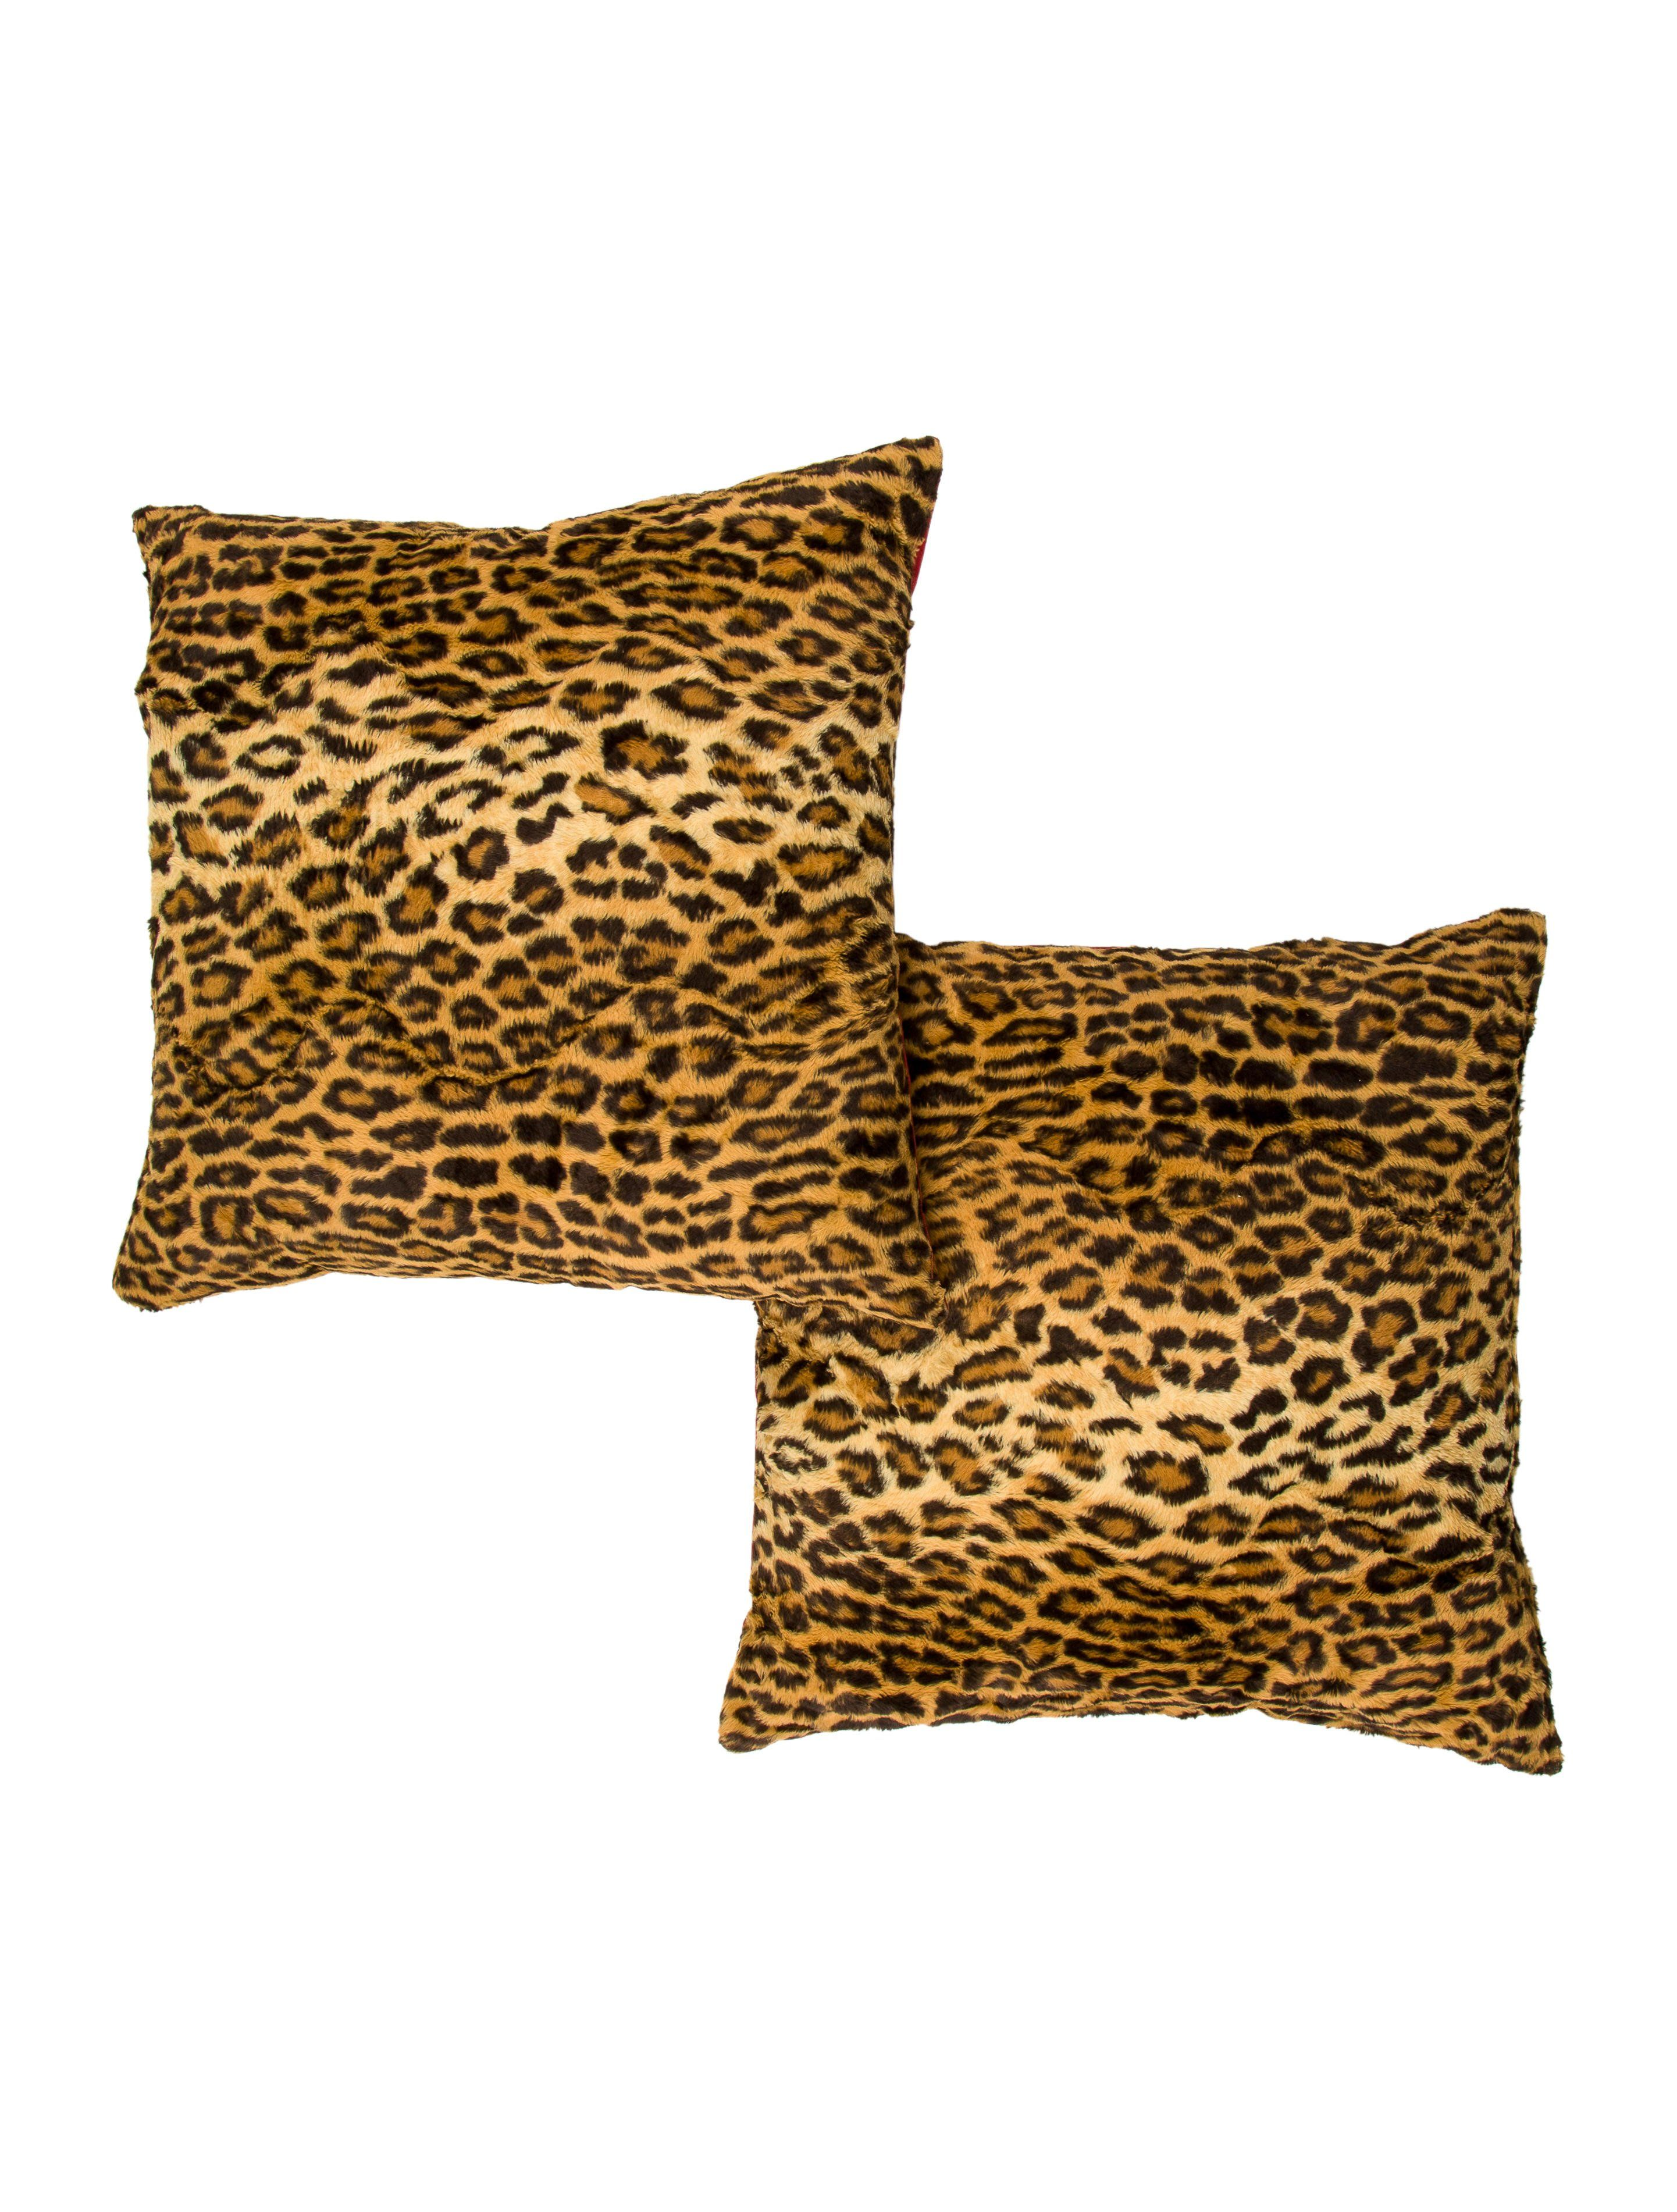 Ralph Lauren Aragon Leopard Throw Pillows Bedding And Bath Wyg22123 The Realreal Throw Pillows Pillows Throw Pillows Bed